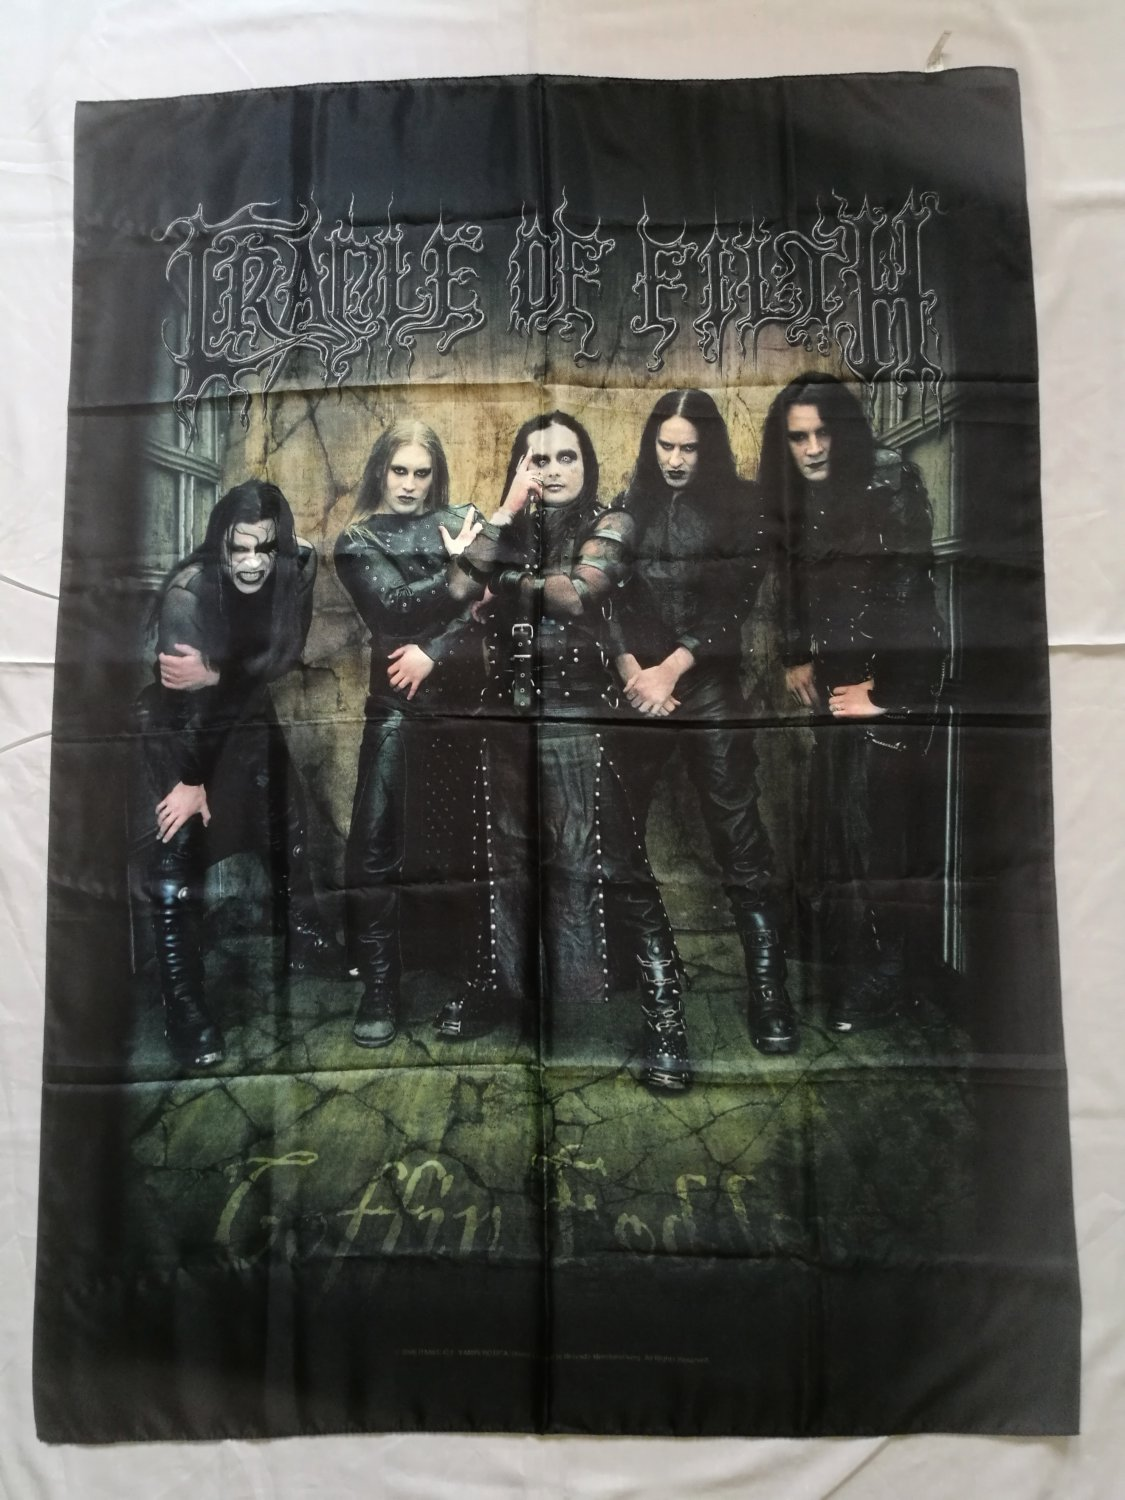 CRADLE of FILTH - Coffin fodder Official lincensed FLAG Heavy thrash death METAL cloth poster